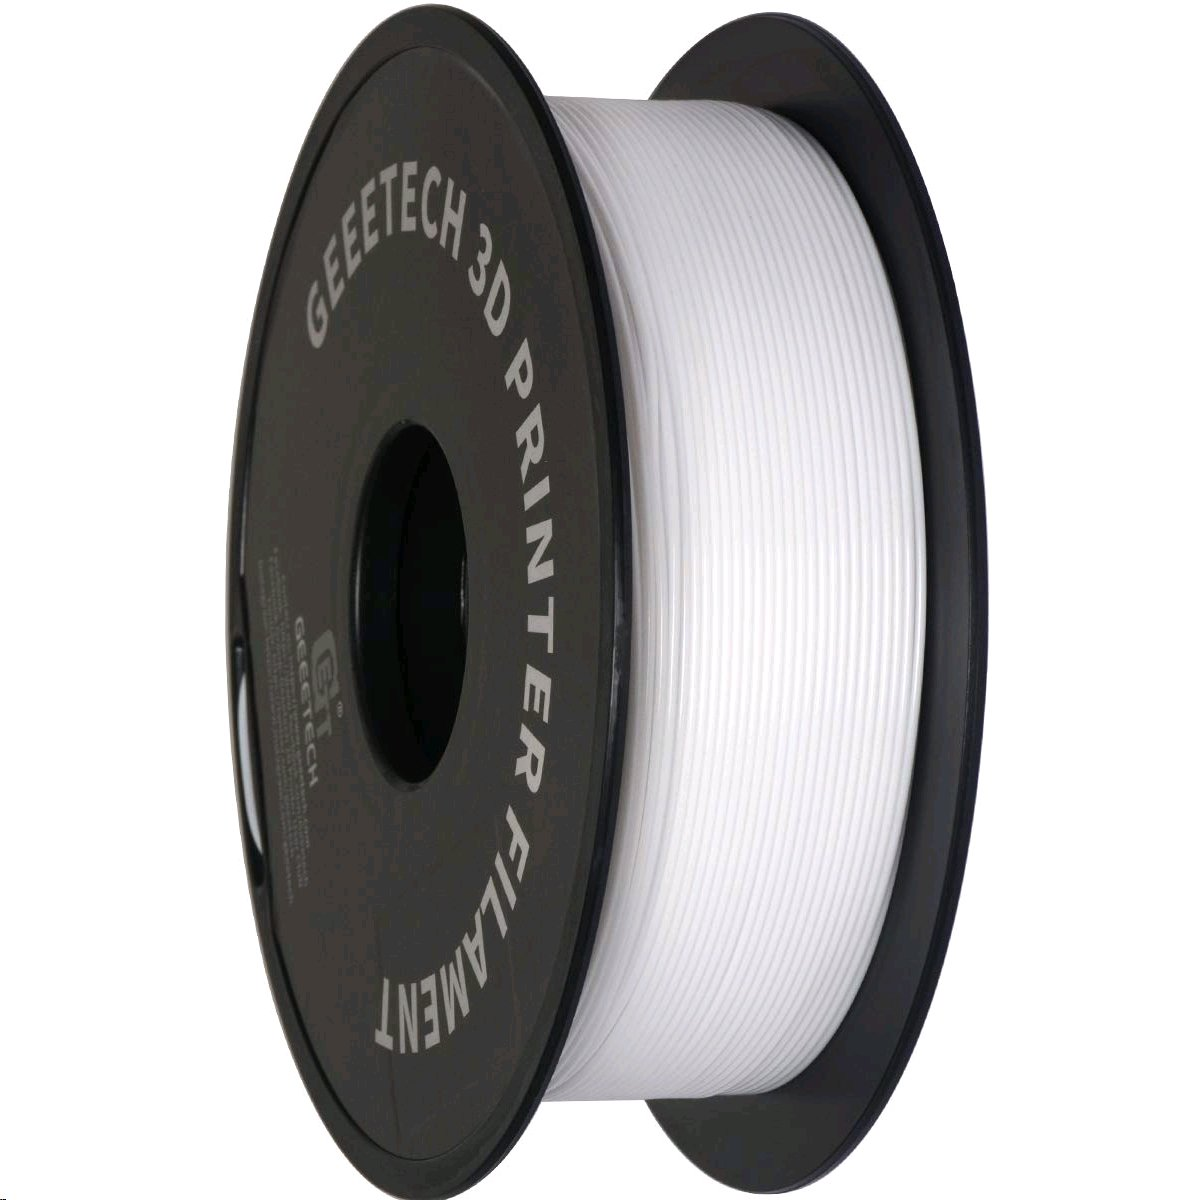 #3Dprinter #3dprinterfilament what kind of 3d printer filament are you usually use? Is that ok?